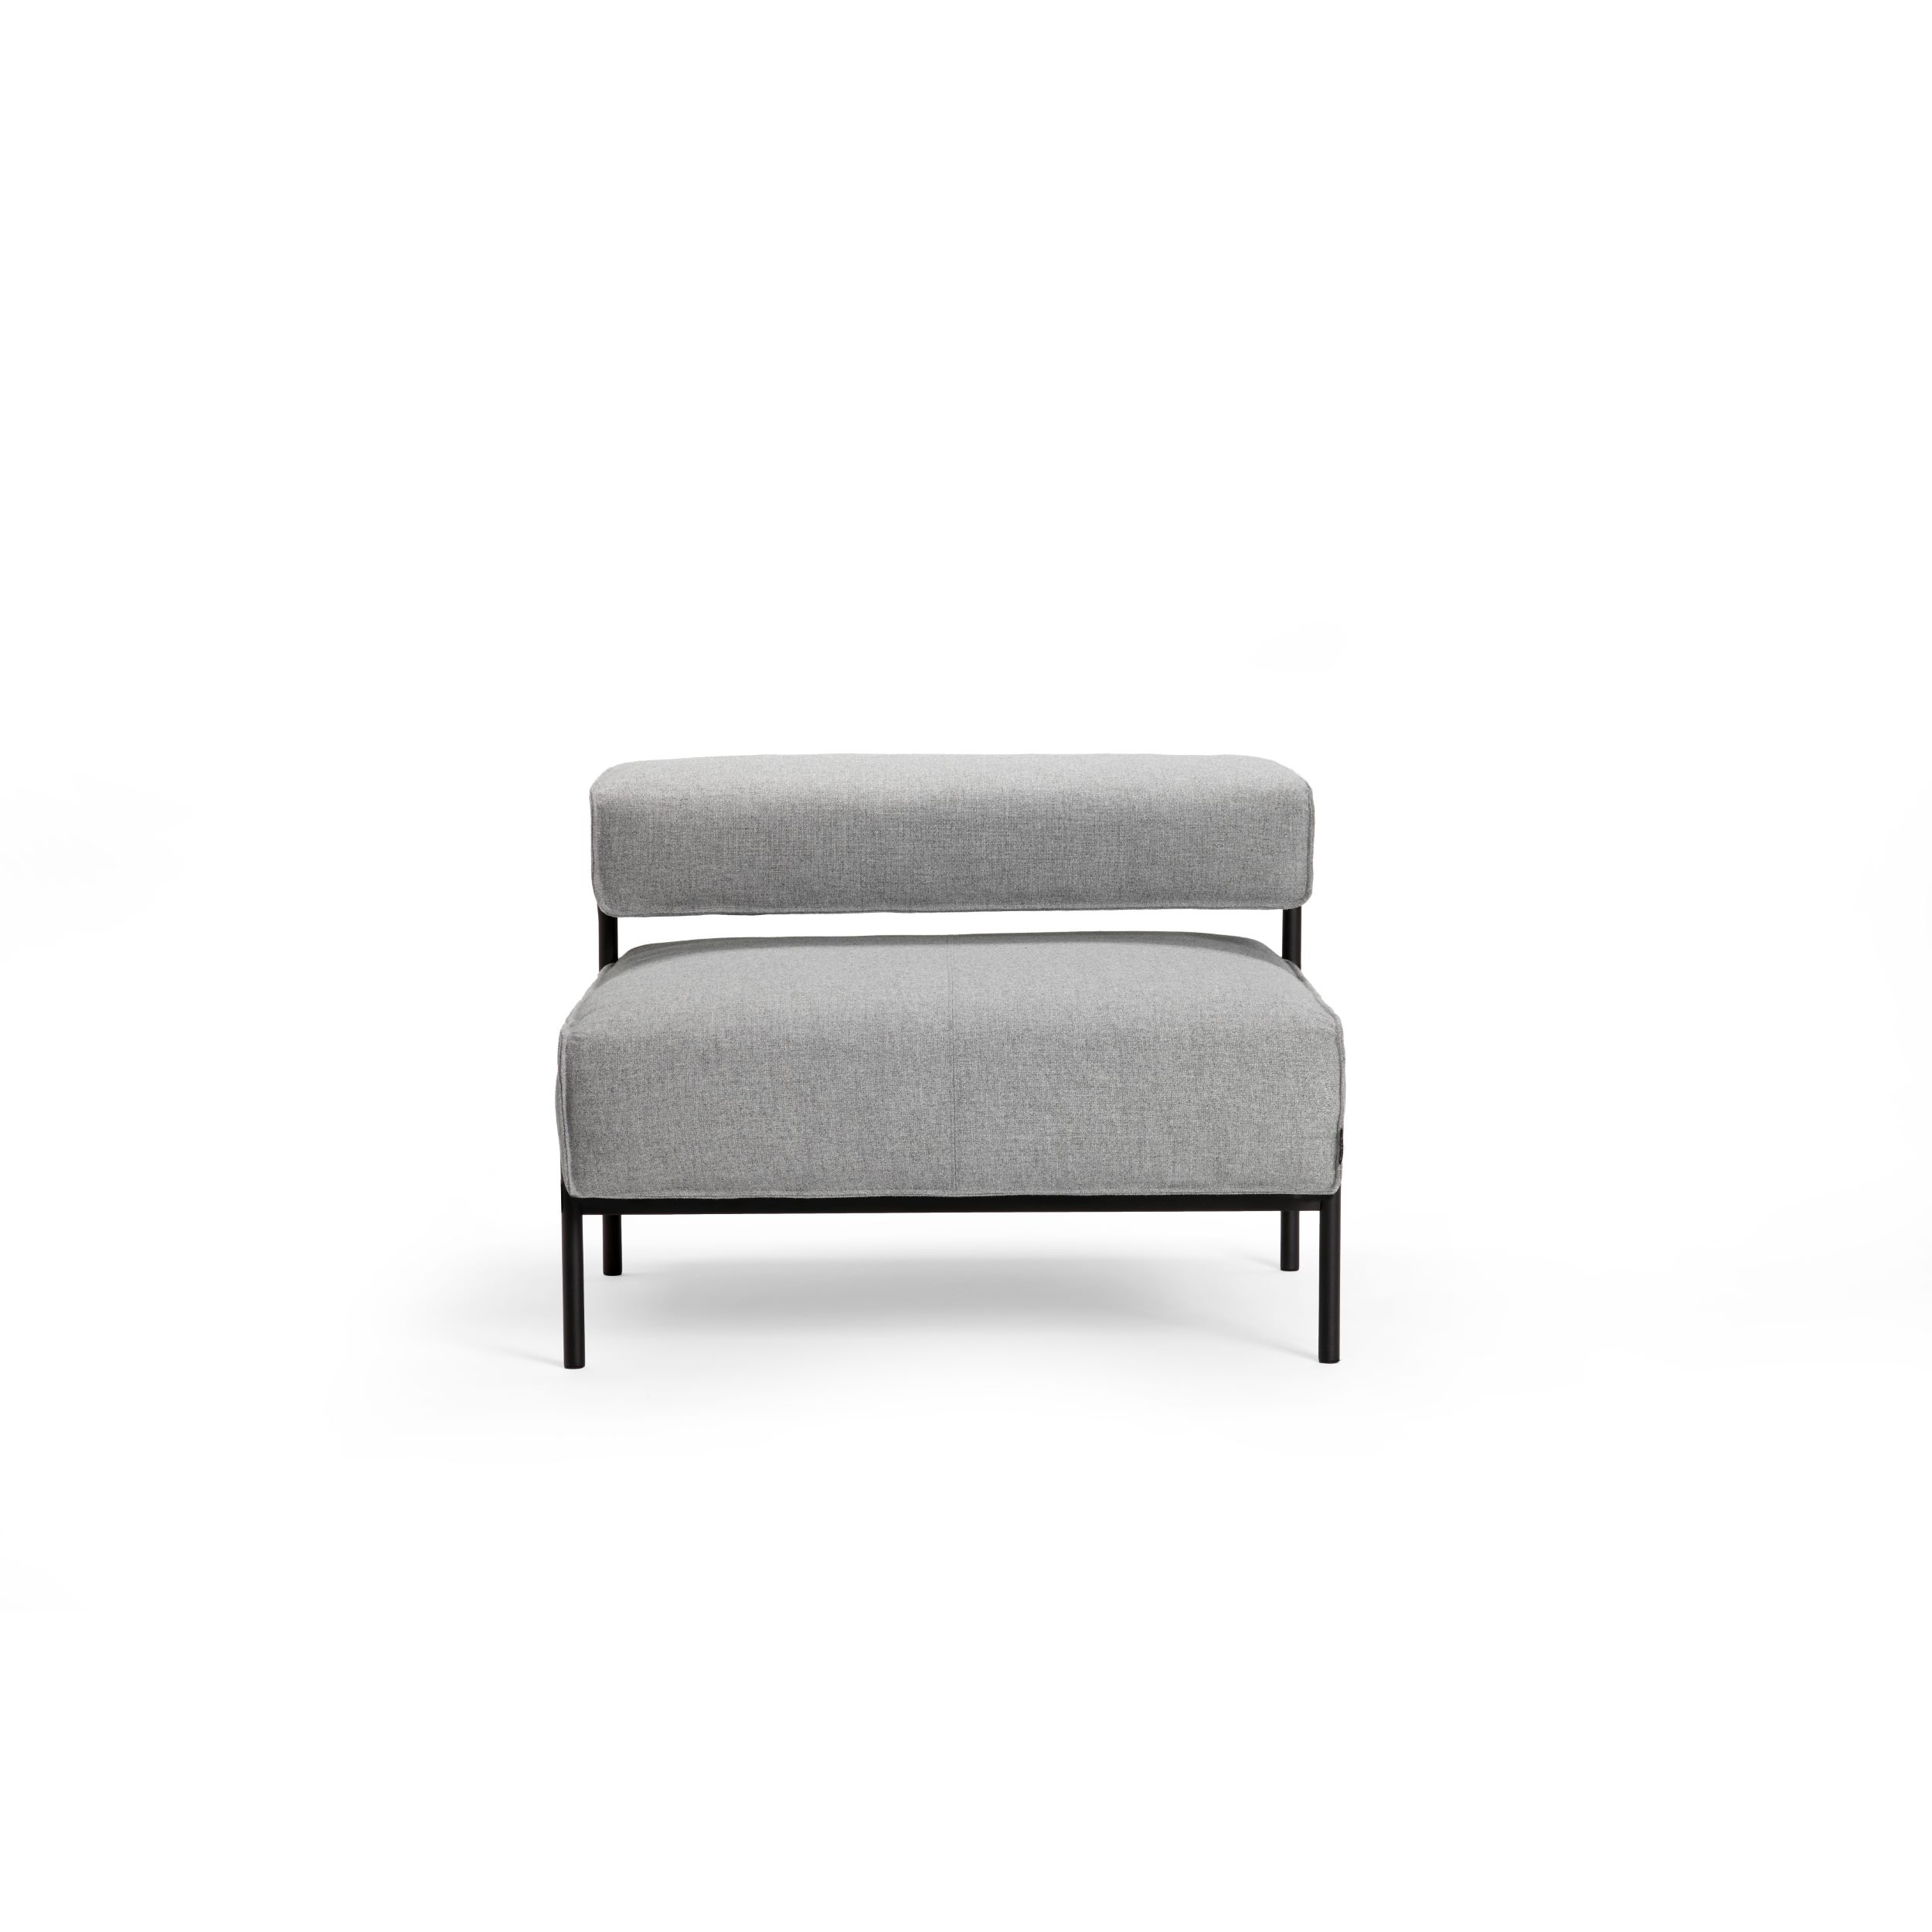 Lucy, B10 | Offecct For Lucy Grey Sofa Chairs (Image 18 of 25)